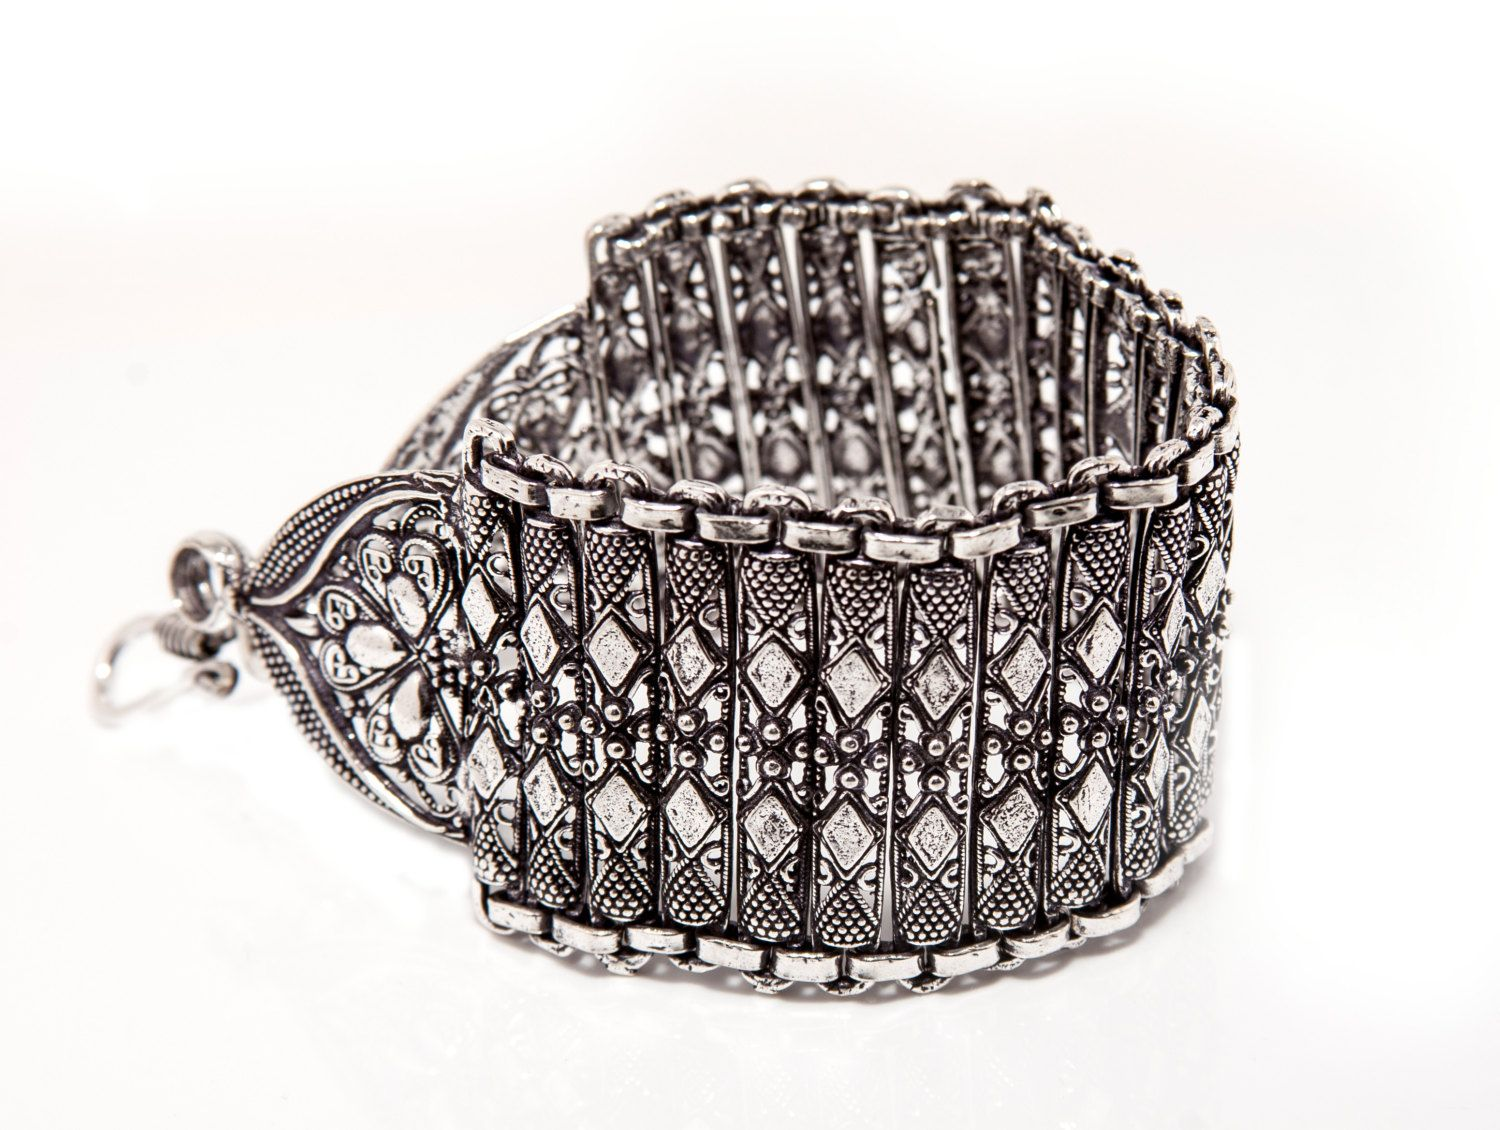 59 best UNIQUE CUFF BRACELETS images on Pinterest Christmas